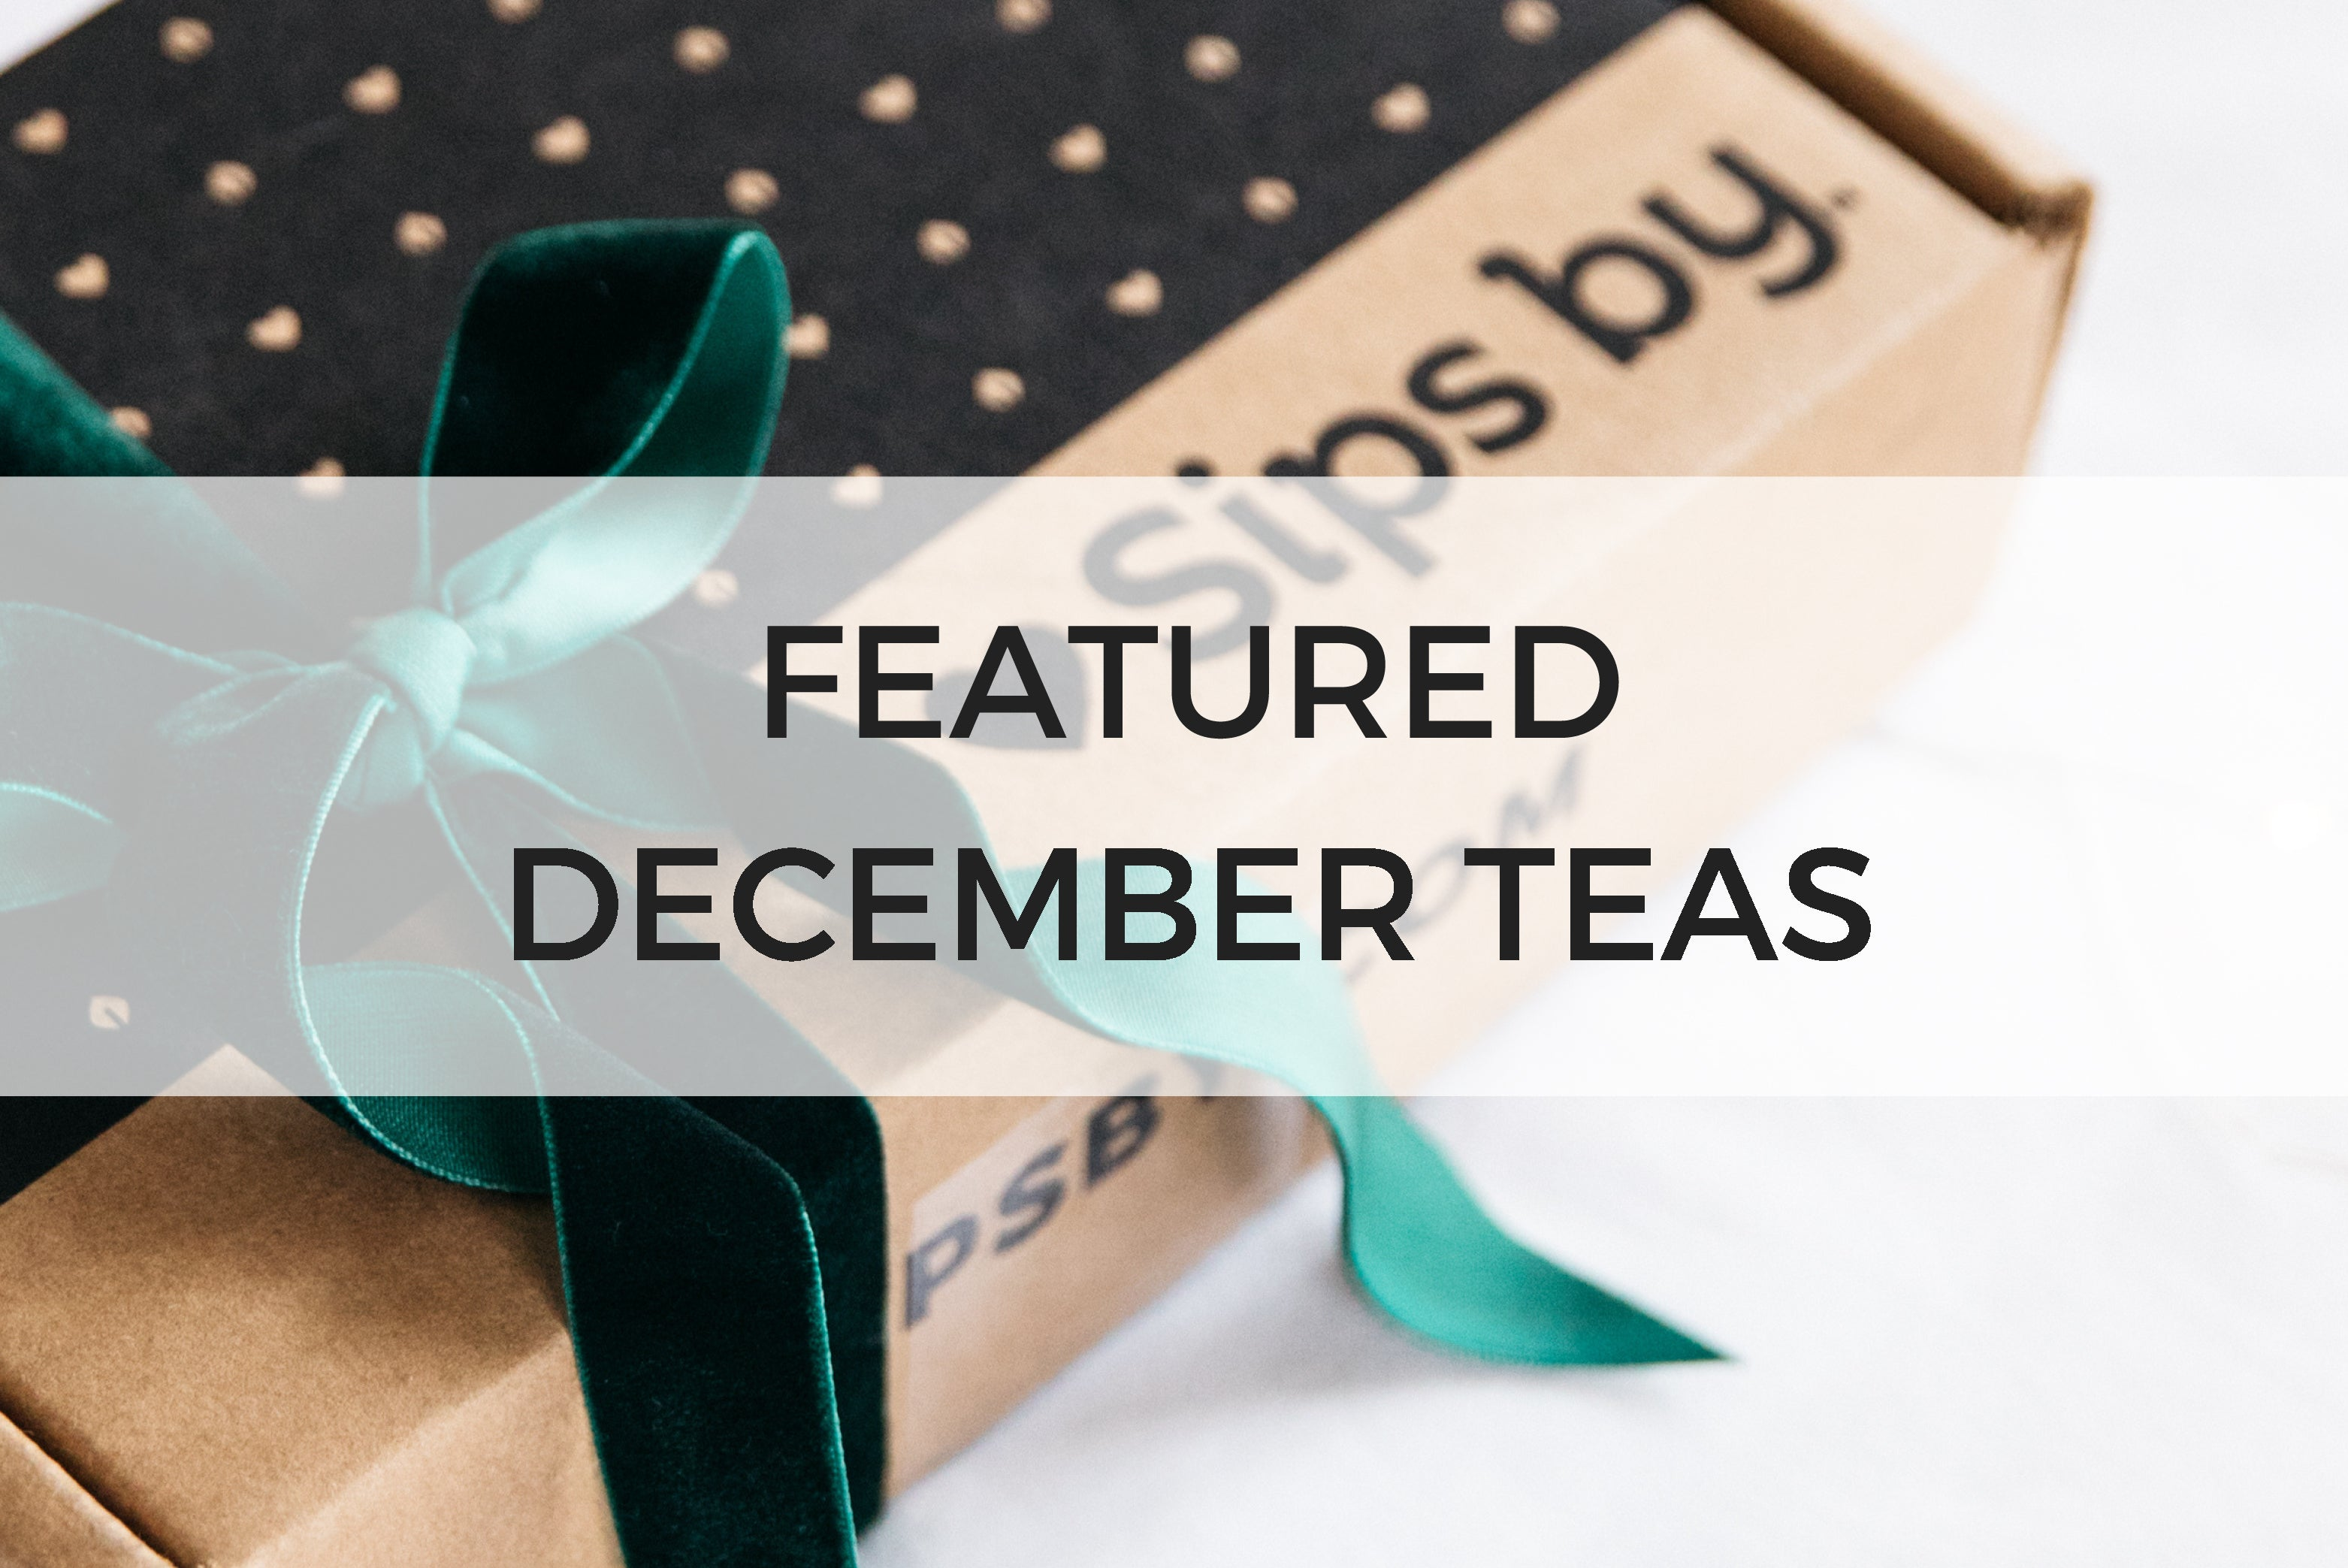 FEATURED DECEMBER TEAS